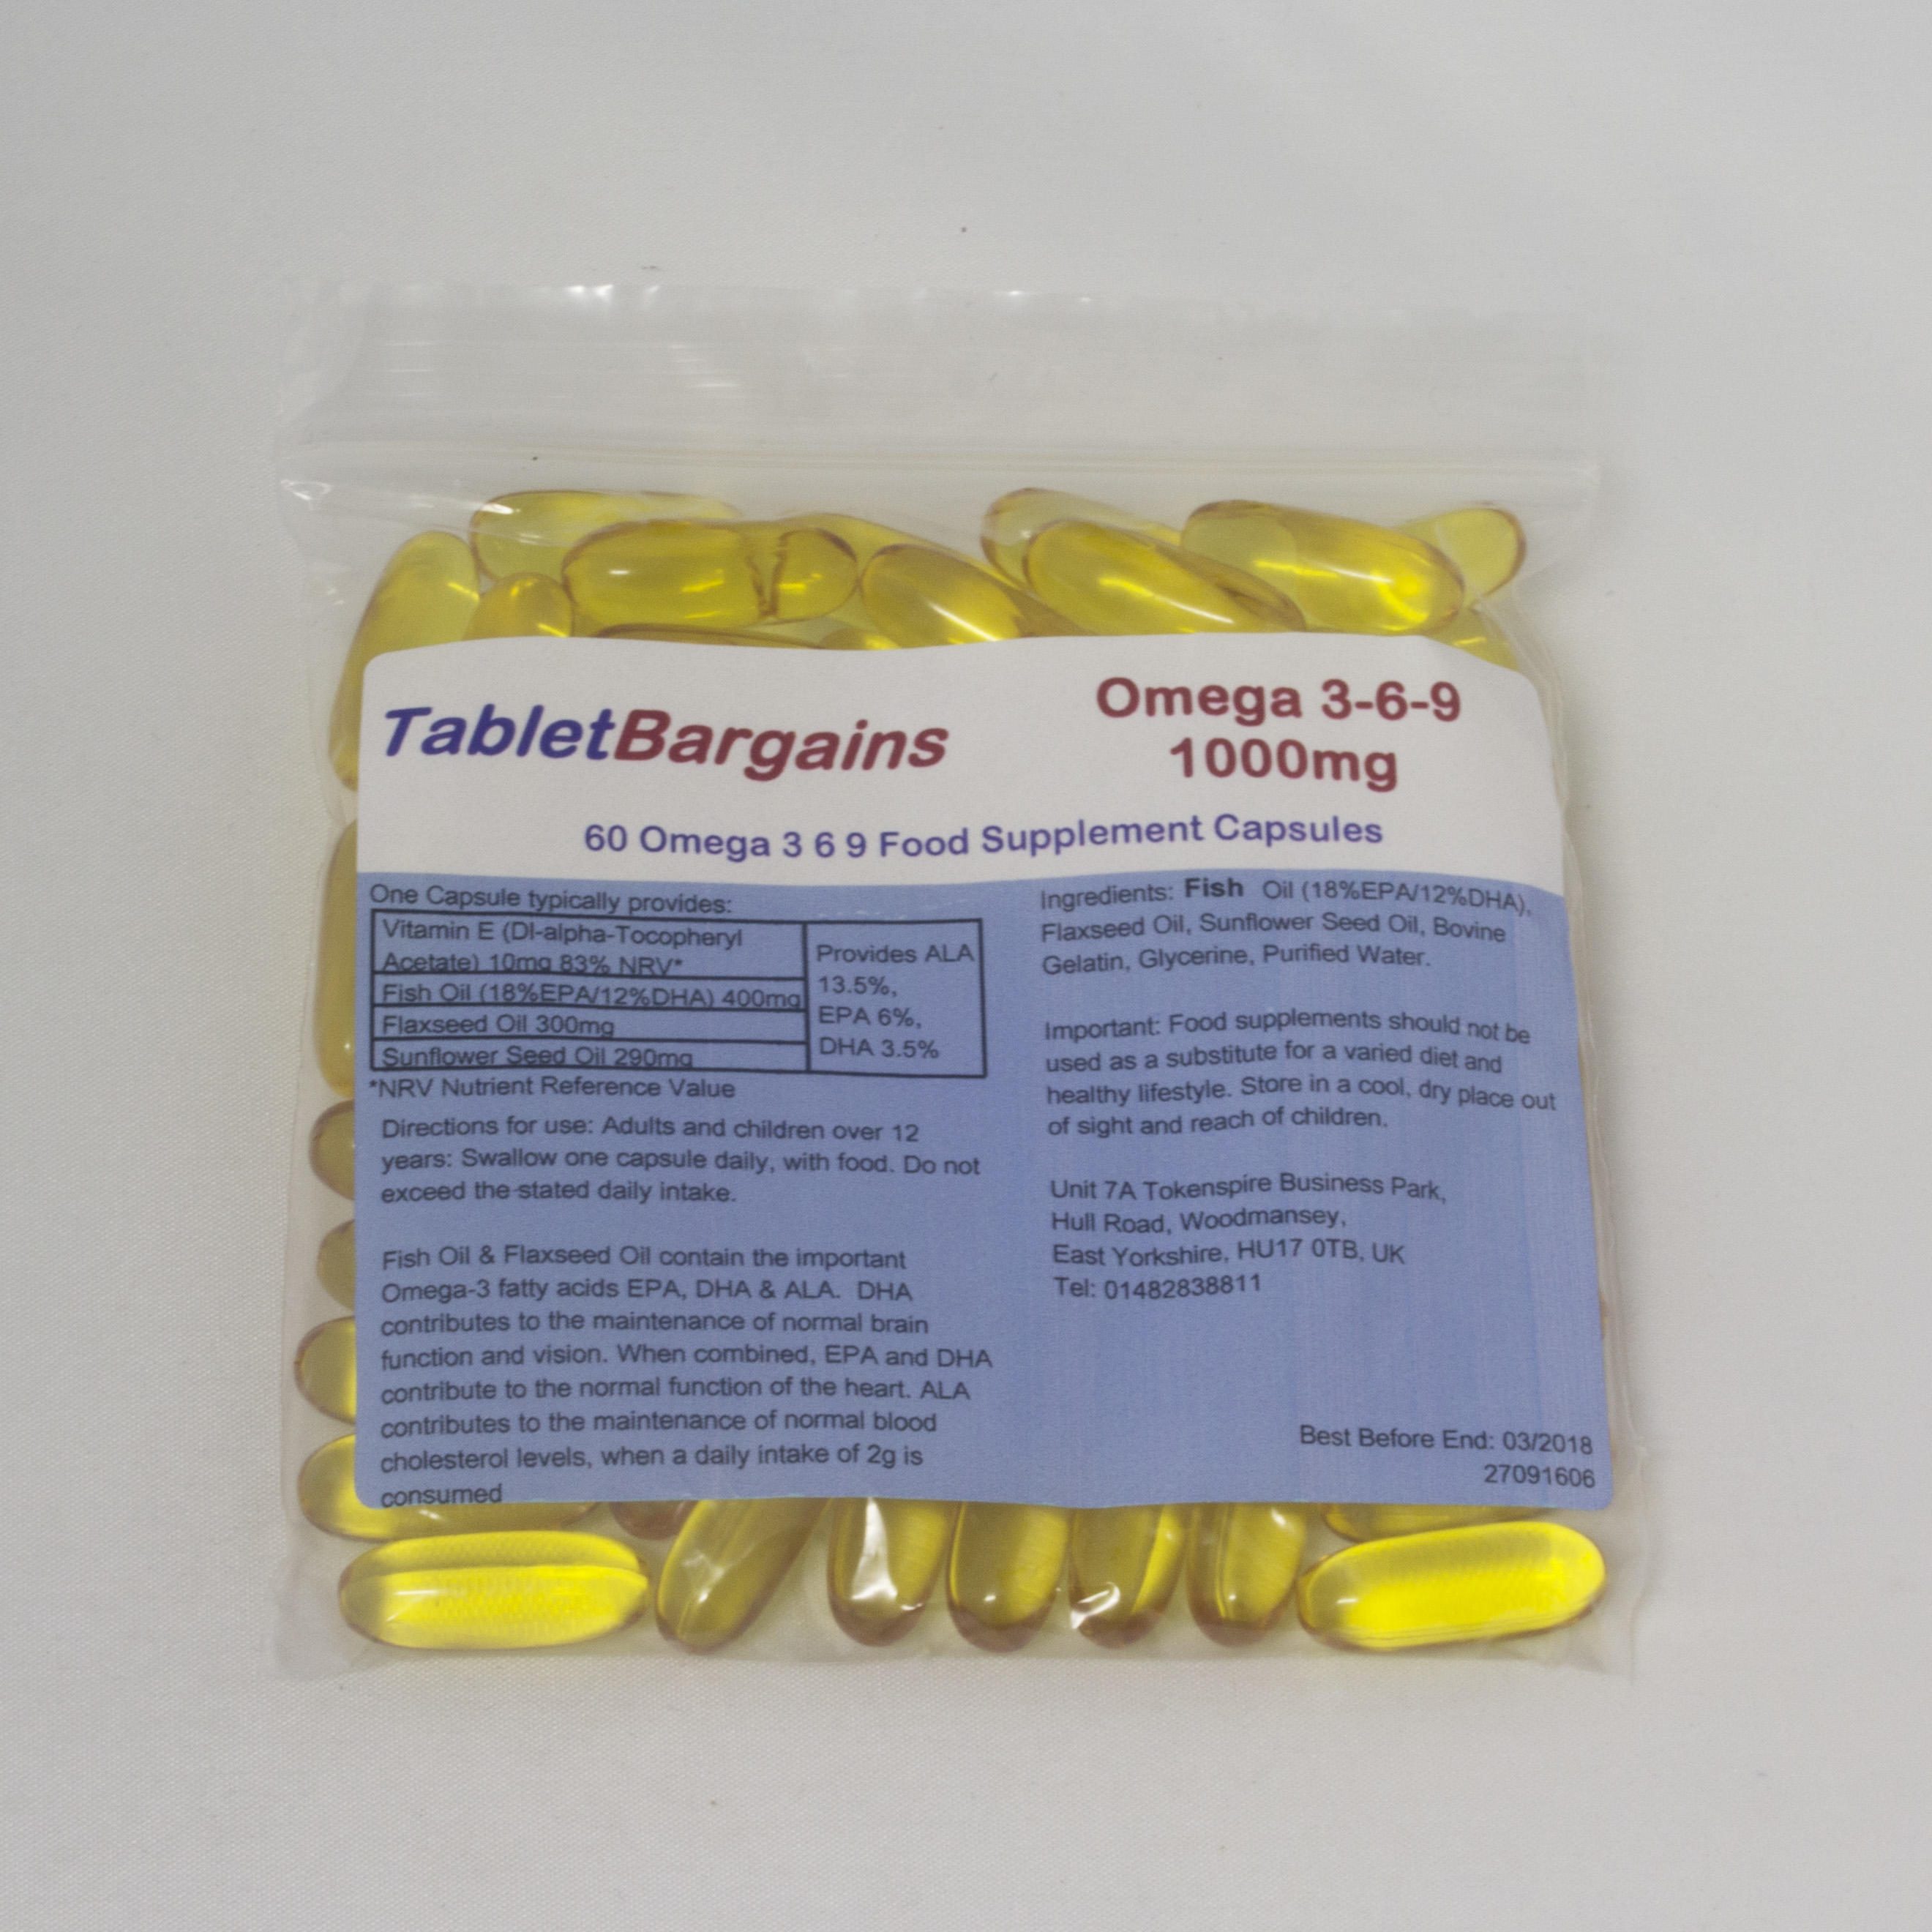 Tablet Bargains Omega 3 6 9 Fish Oil 1000mg Capsules pack of 60